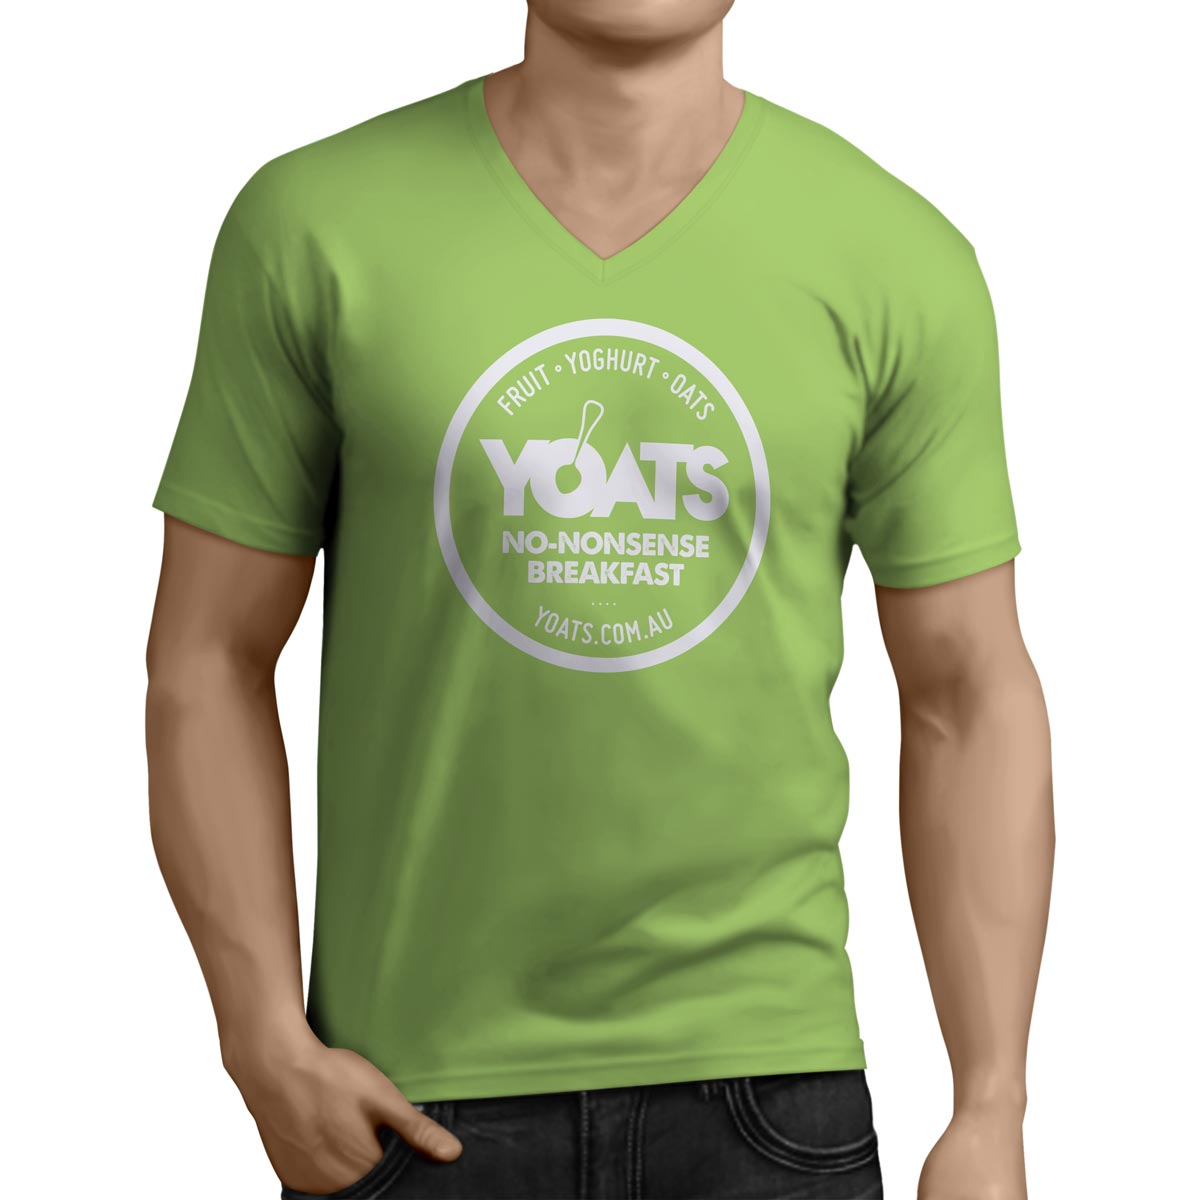 A green tshirt with the white YOATS logo on it